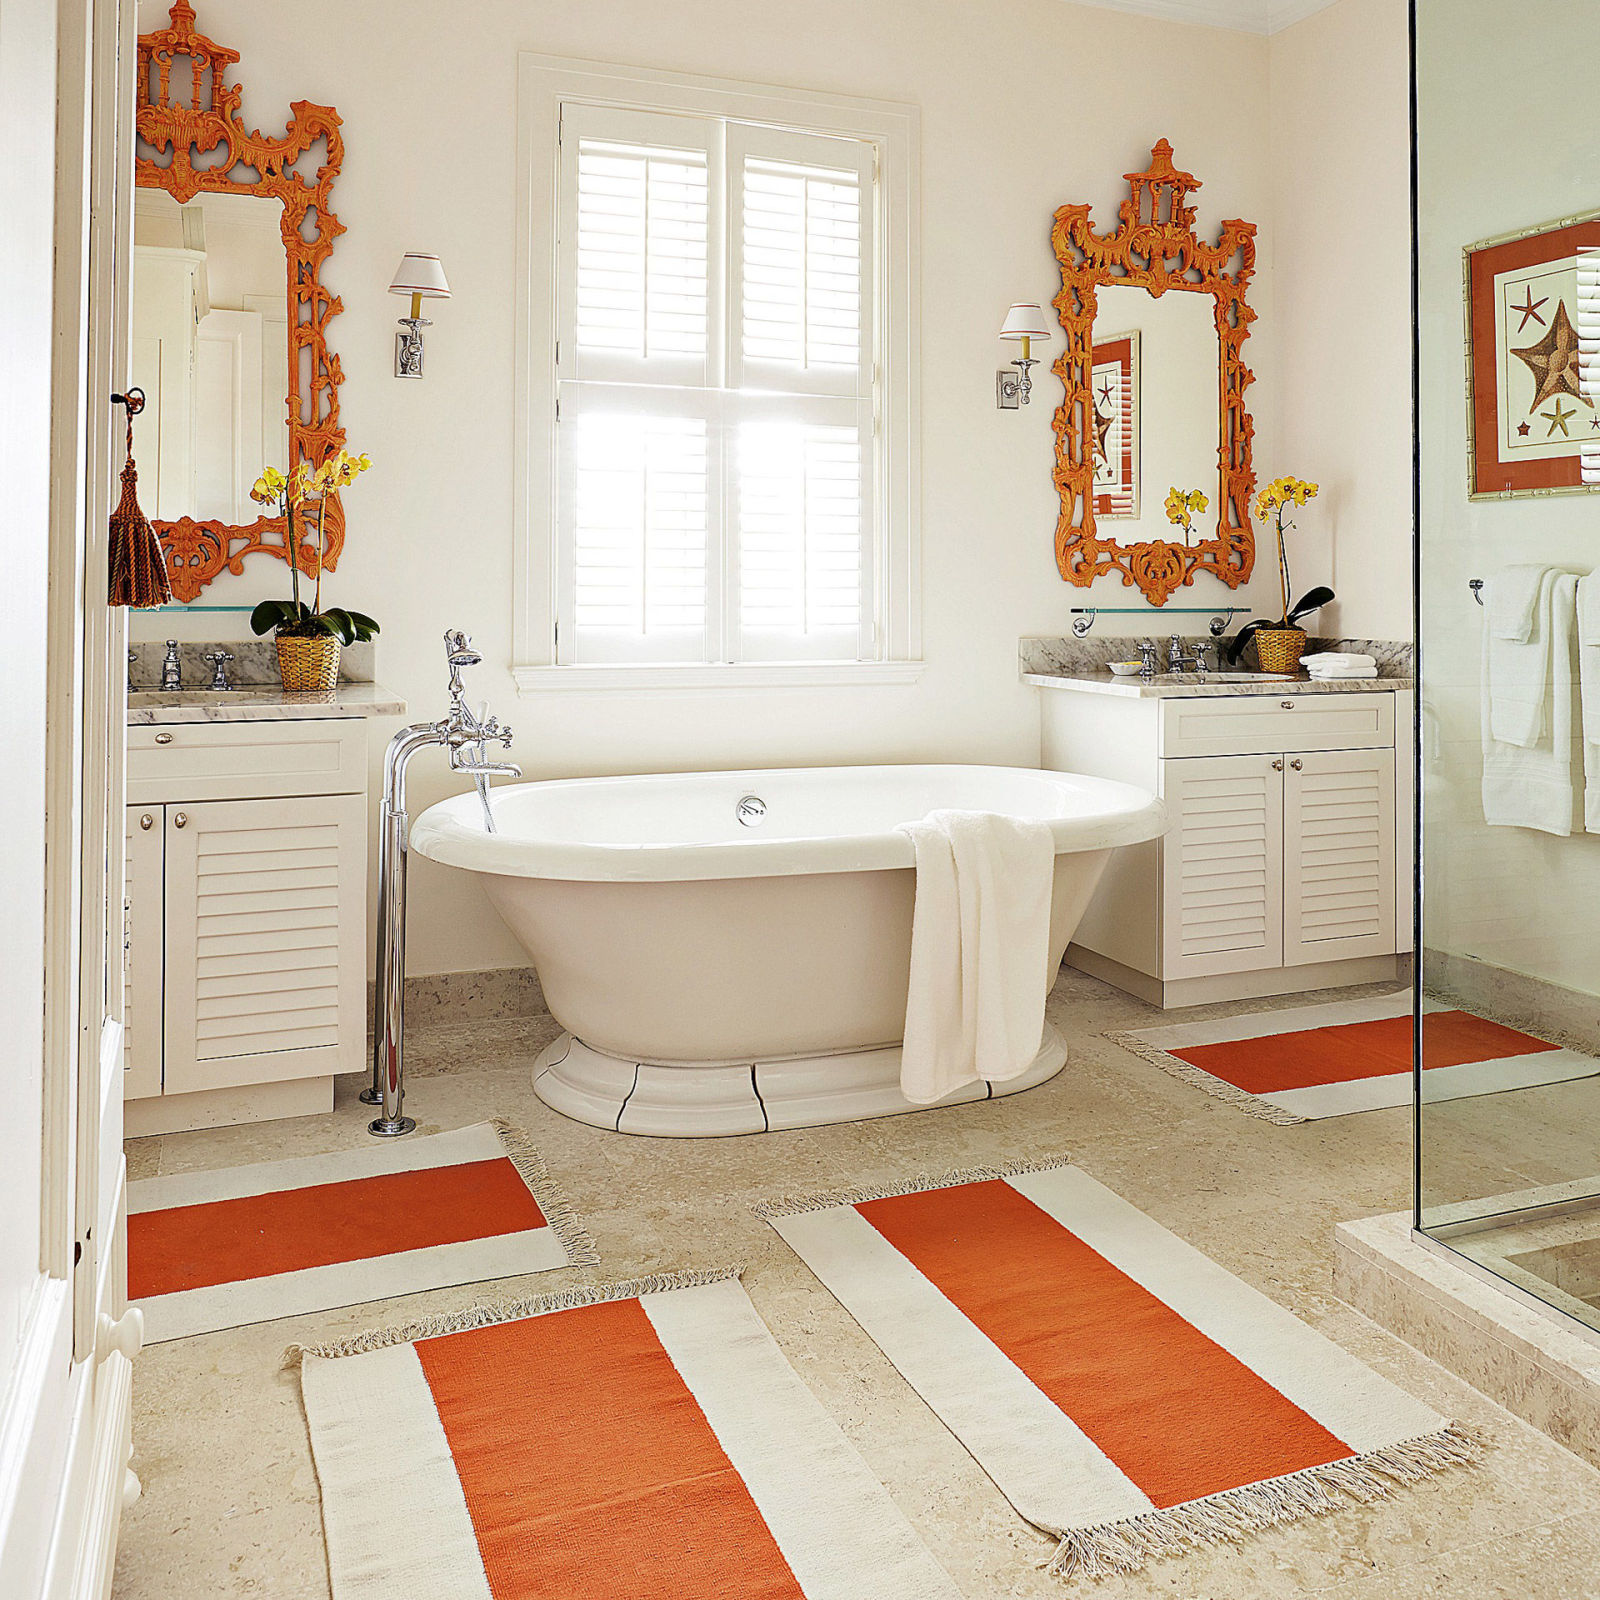 Bathroom Decor Colors And Designs on modern bathrooms and colors, bathroom curtains and colors, clothing and colors, bedroom design and colors, bedroom furniture and colors, bathroom ideas and colors, books and colors,